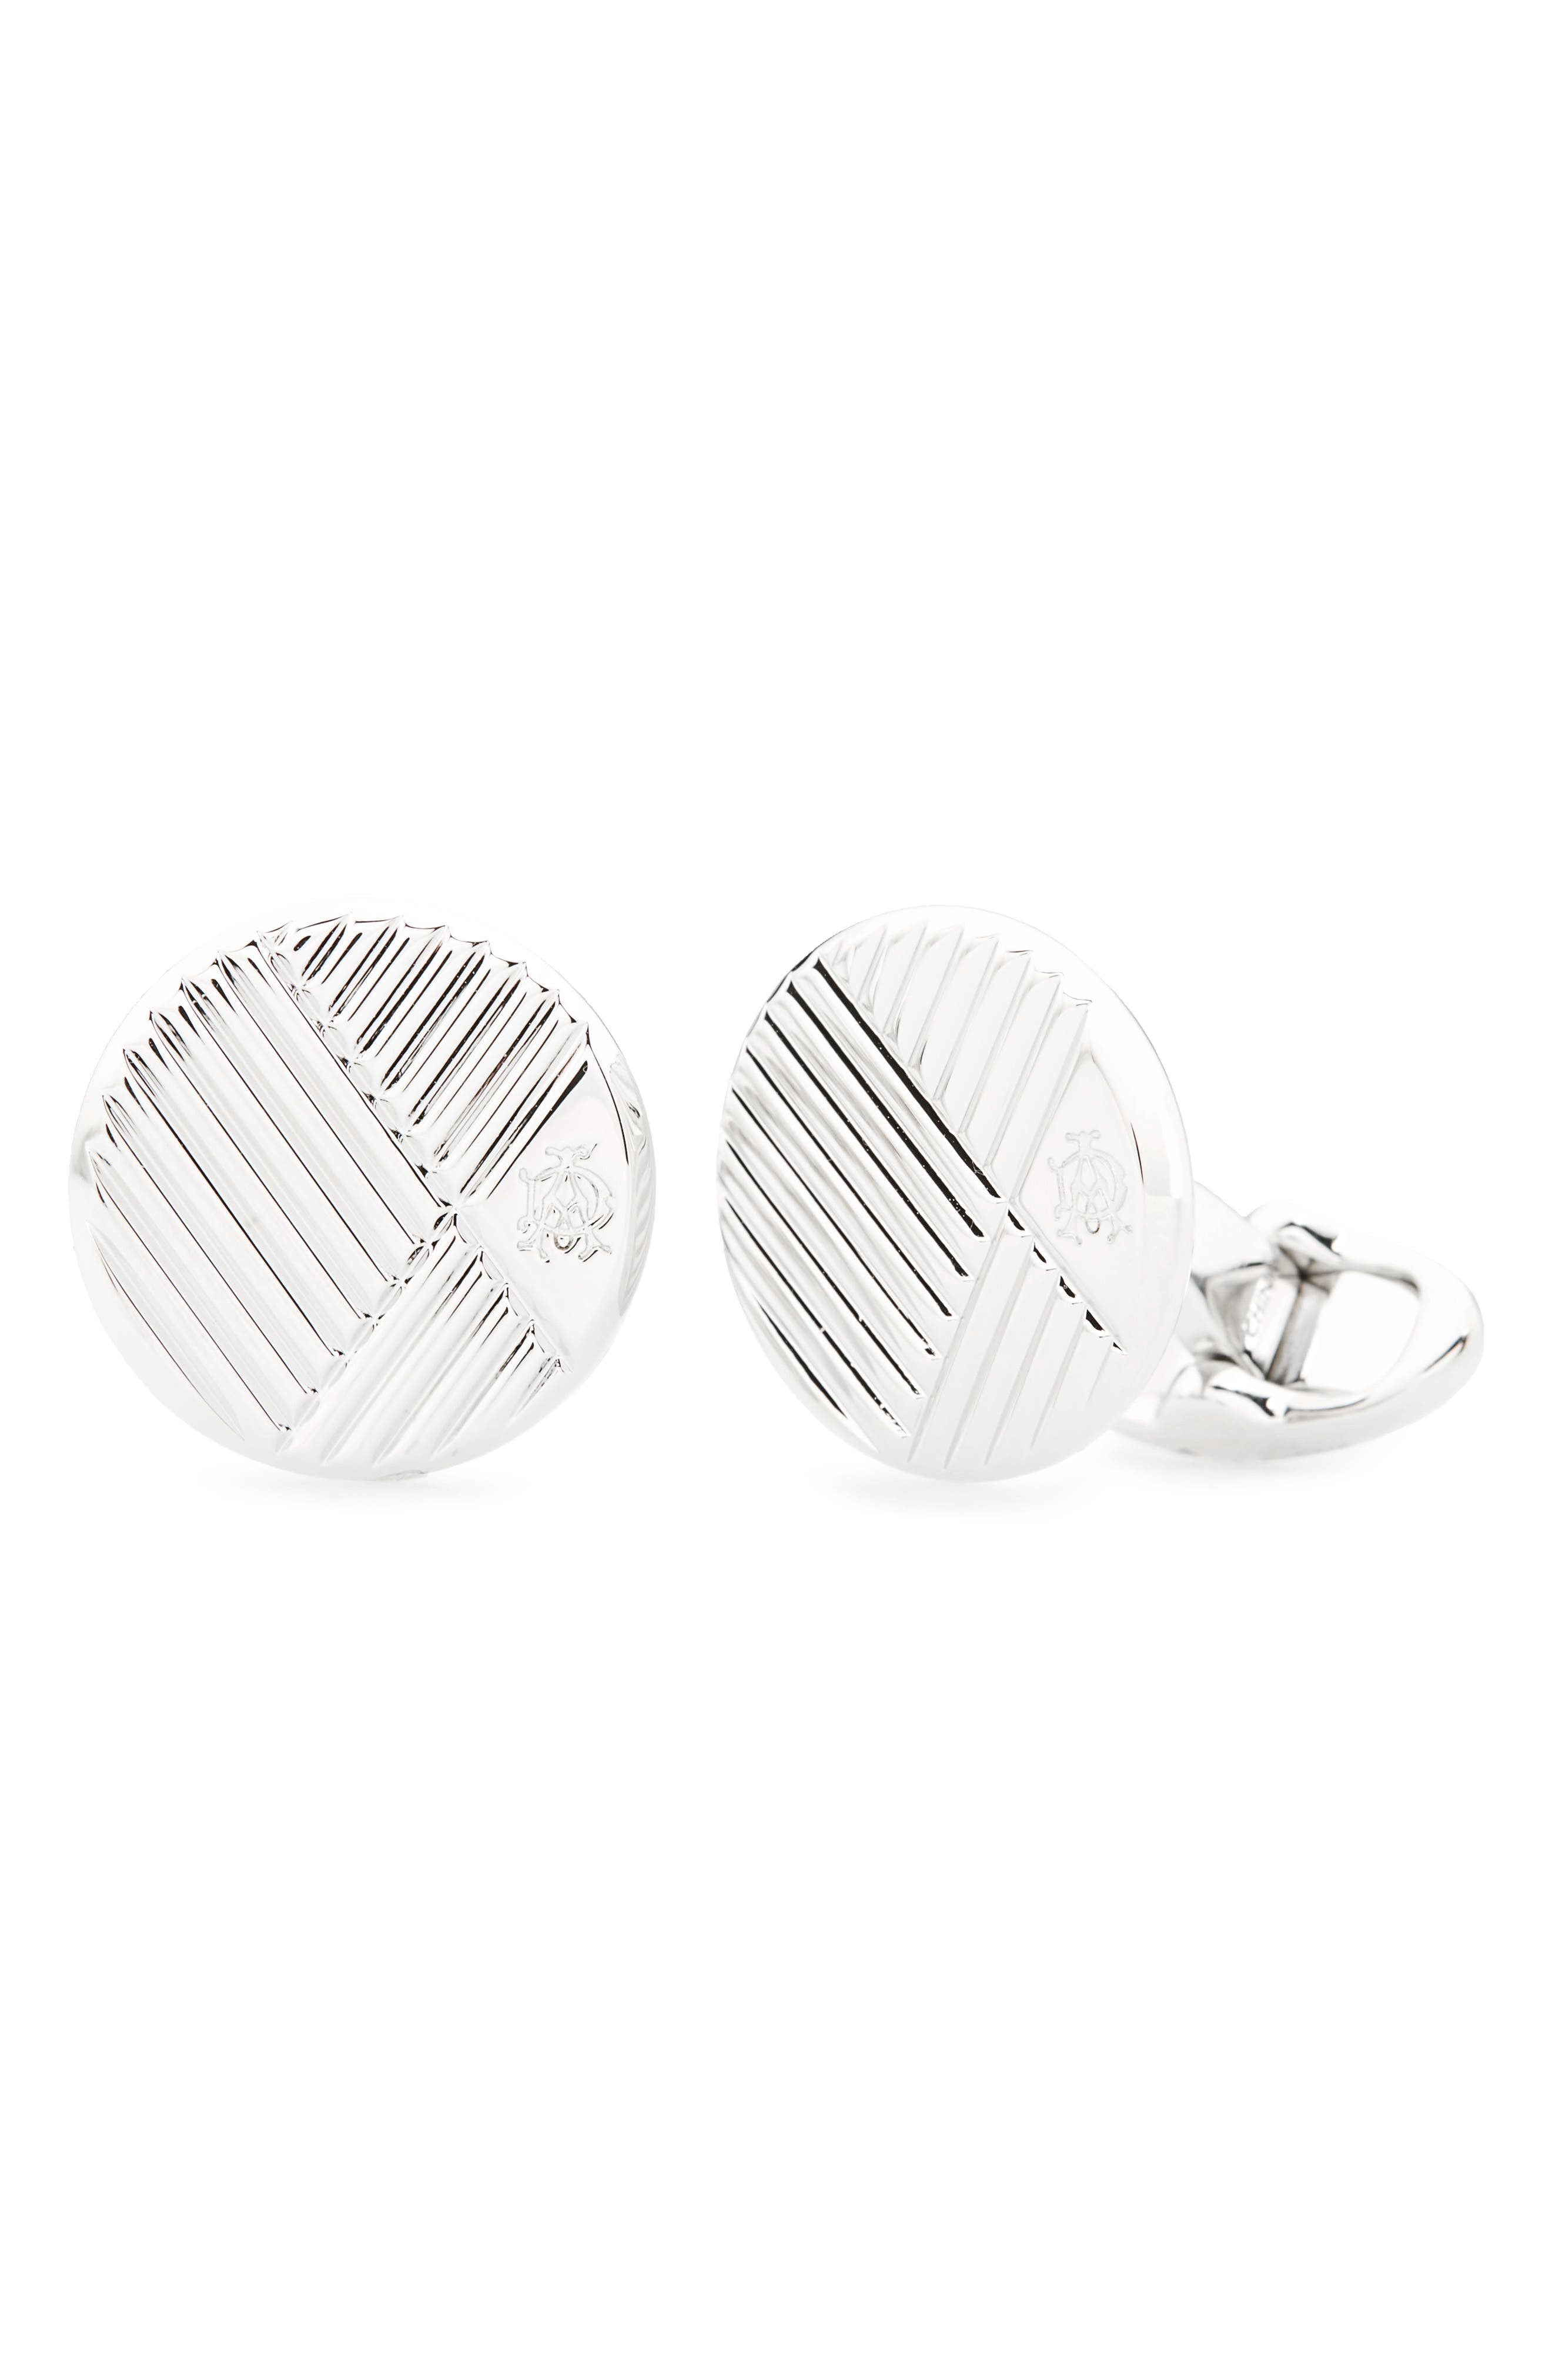 Round Diagonal Cuff Links,                         Main,                         color, 040